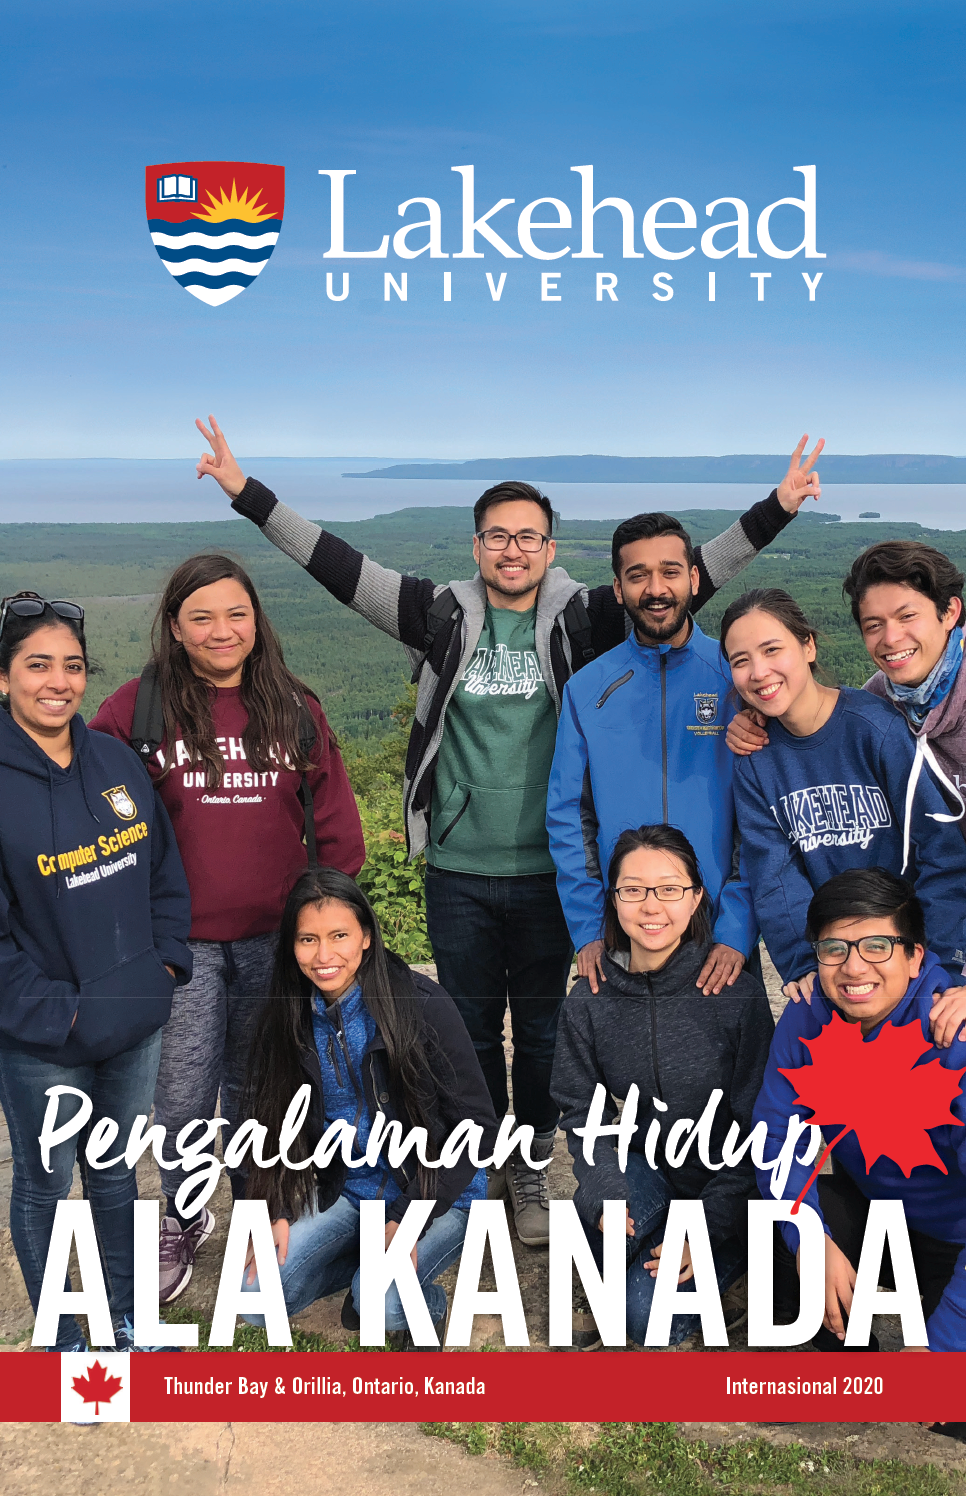 The cover of the 2019 Lakehead International Brochure in Indonesian.